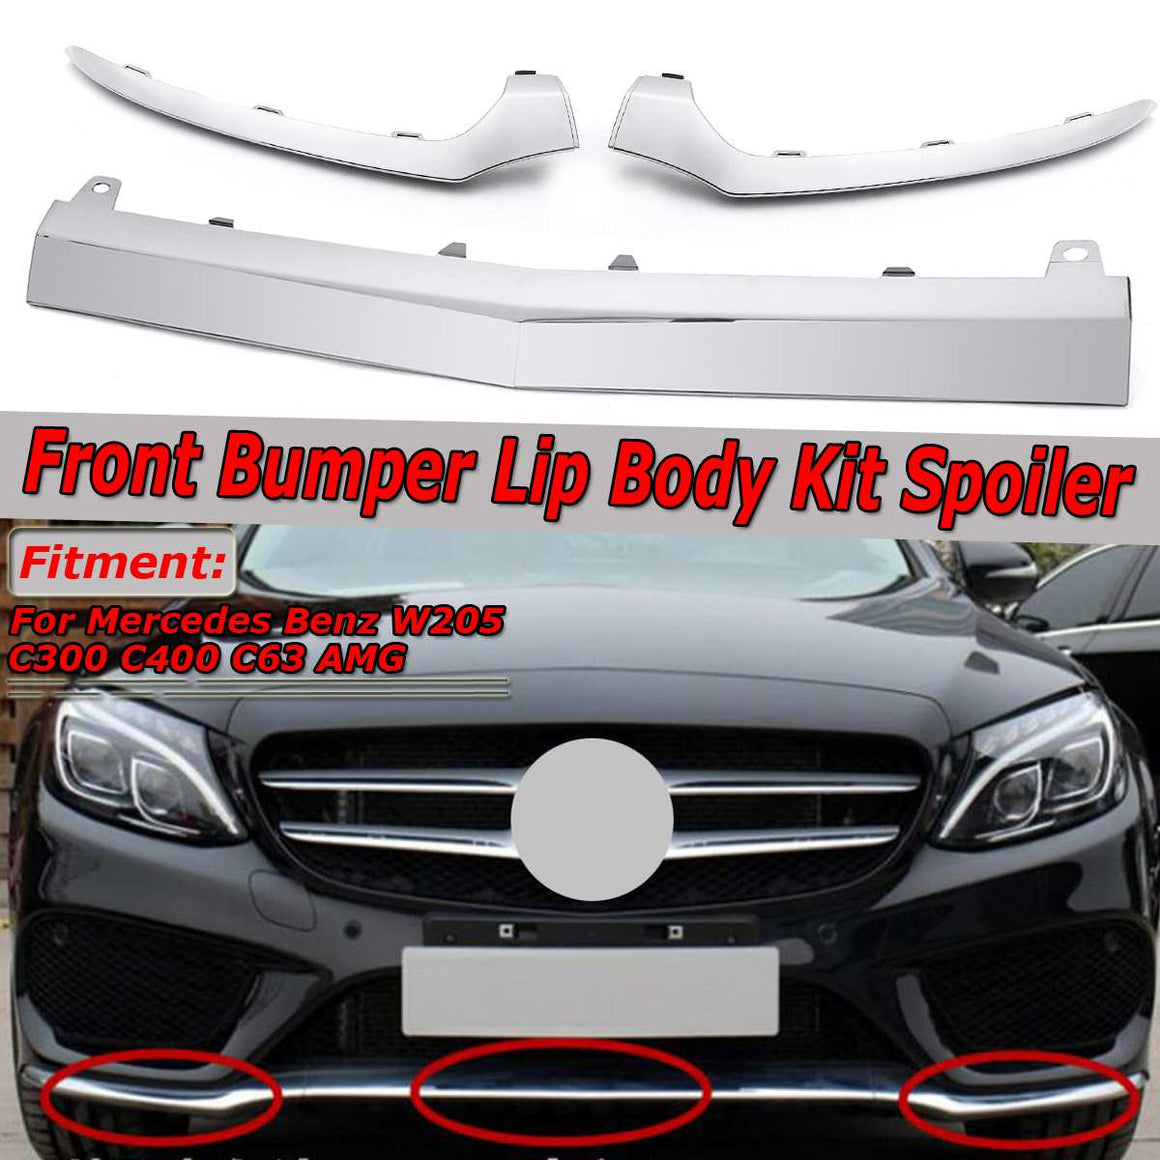 Chrome Front Lower Bumper Splitter Molding Cover Trim For Mercedes Benz W205 C300 C400 C63 For AMG